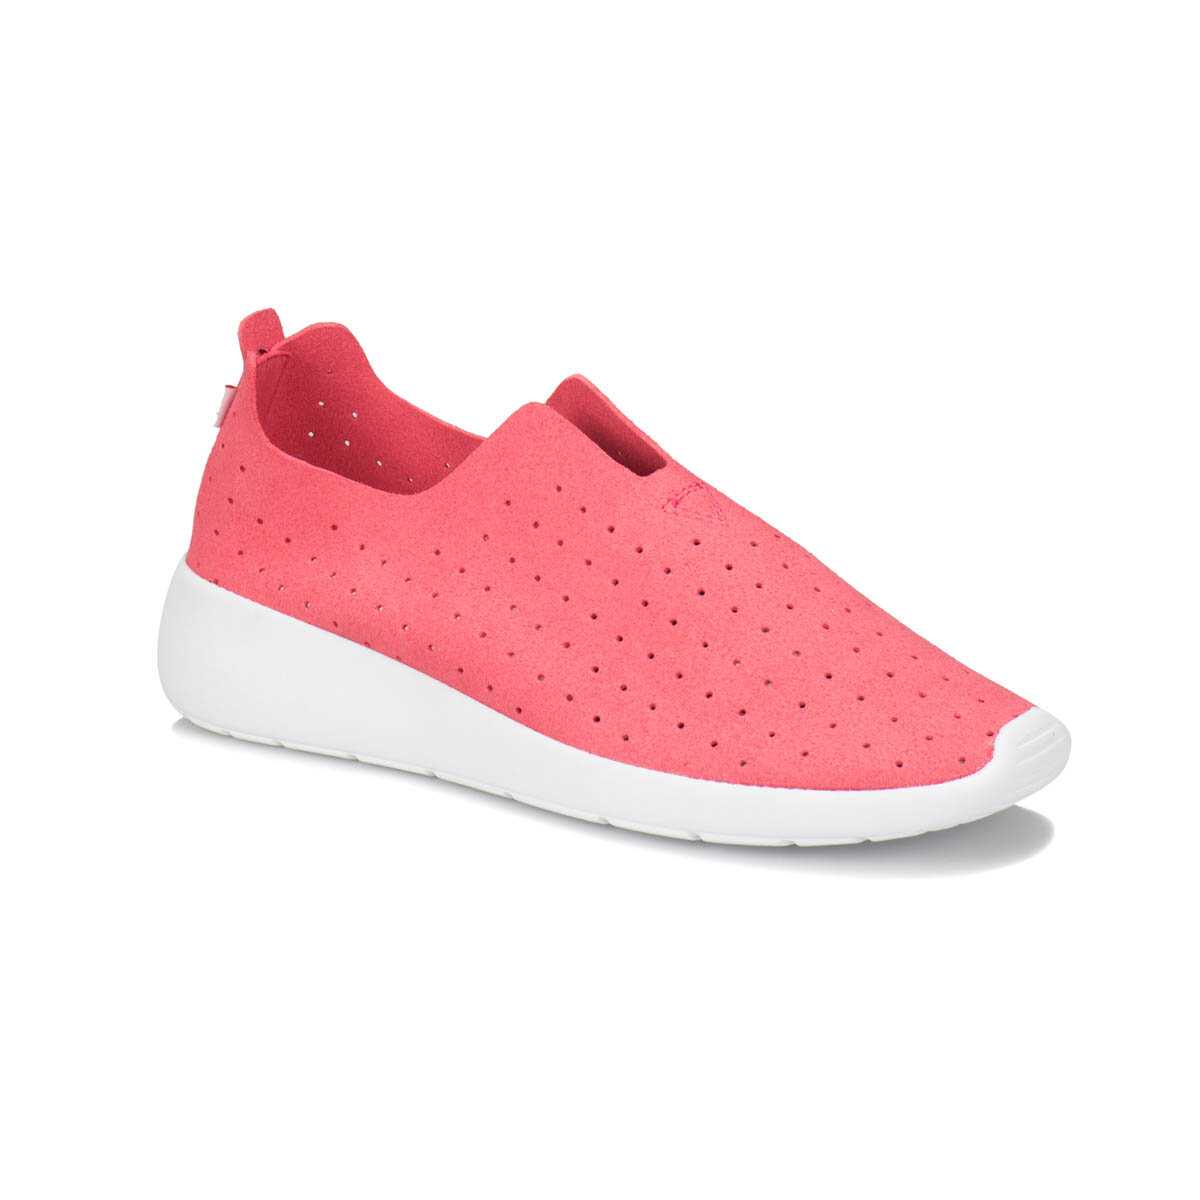 FLO HERA W Pink Women Slip On Shoes KINETIX